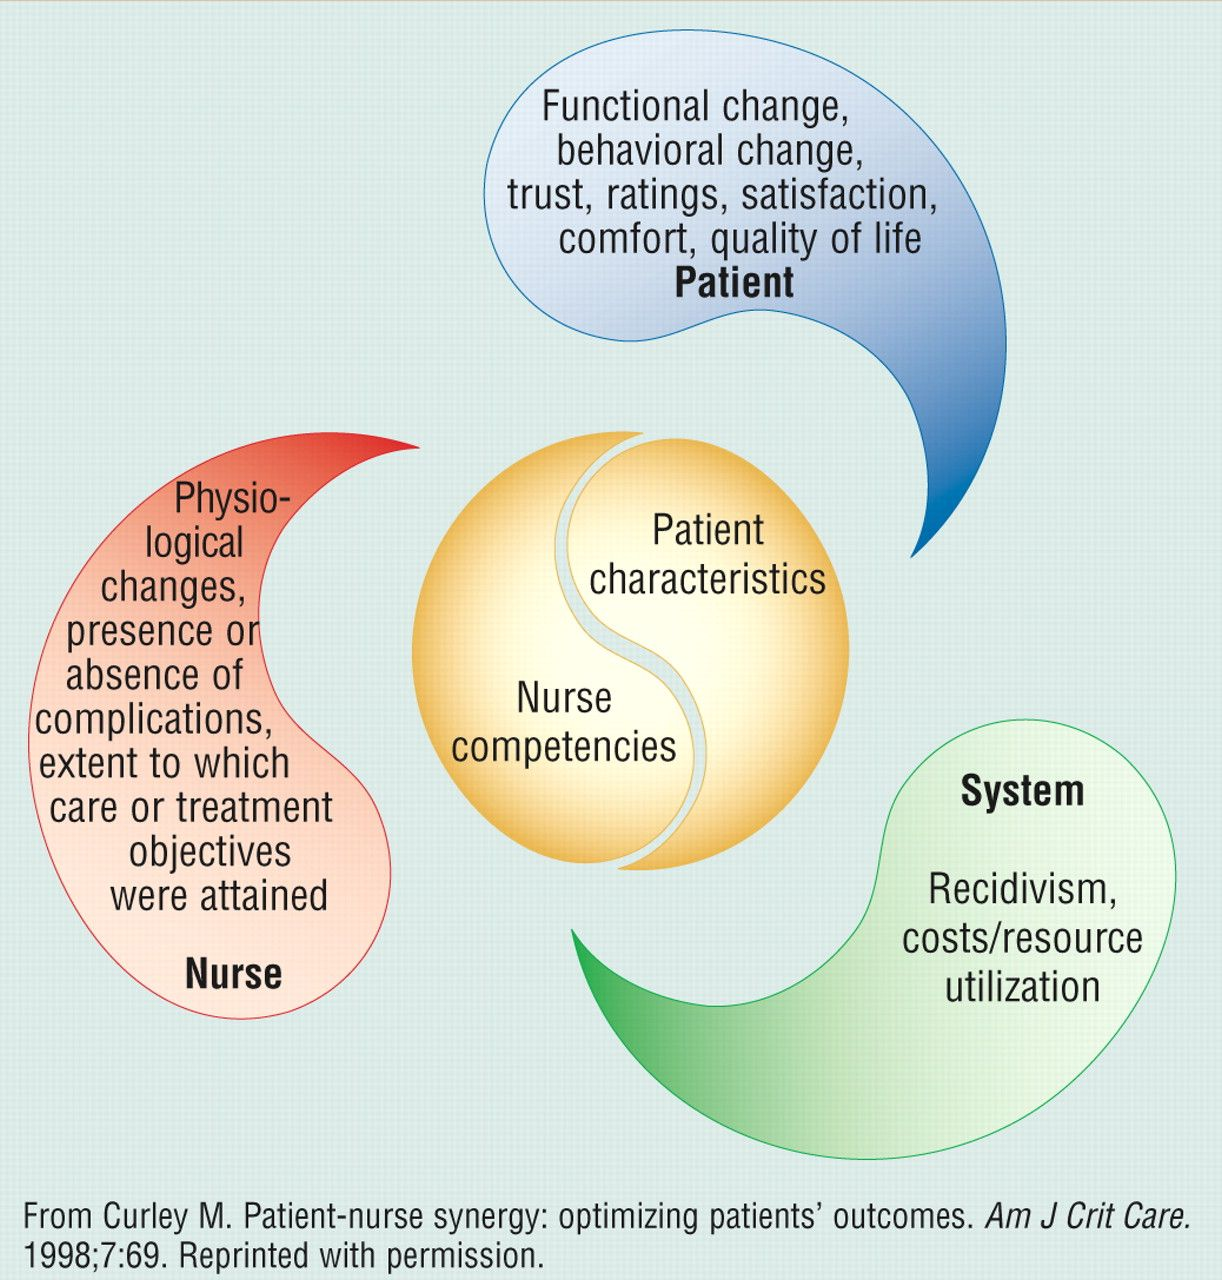 extending the synergy model to preceptorship